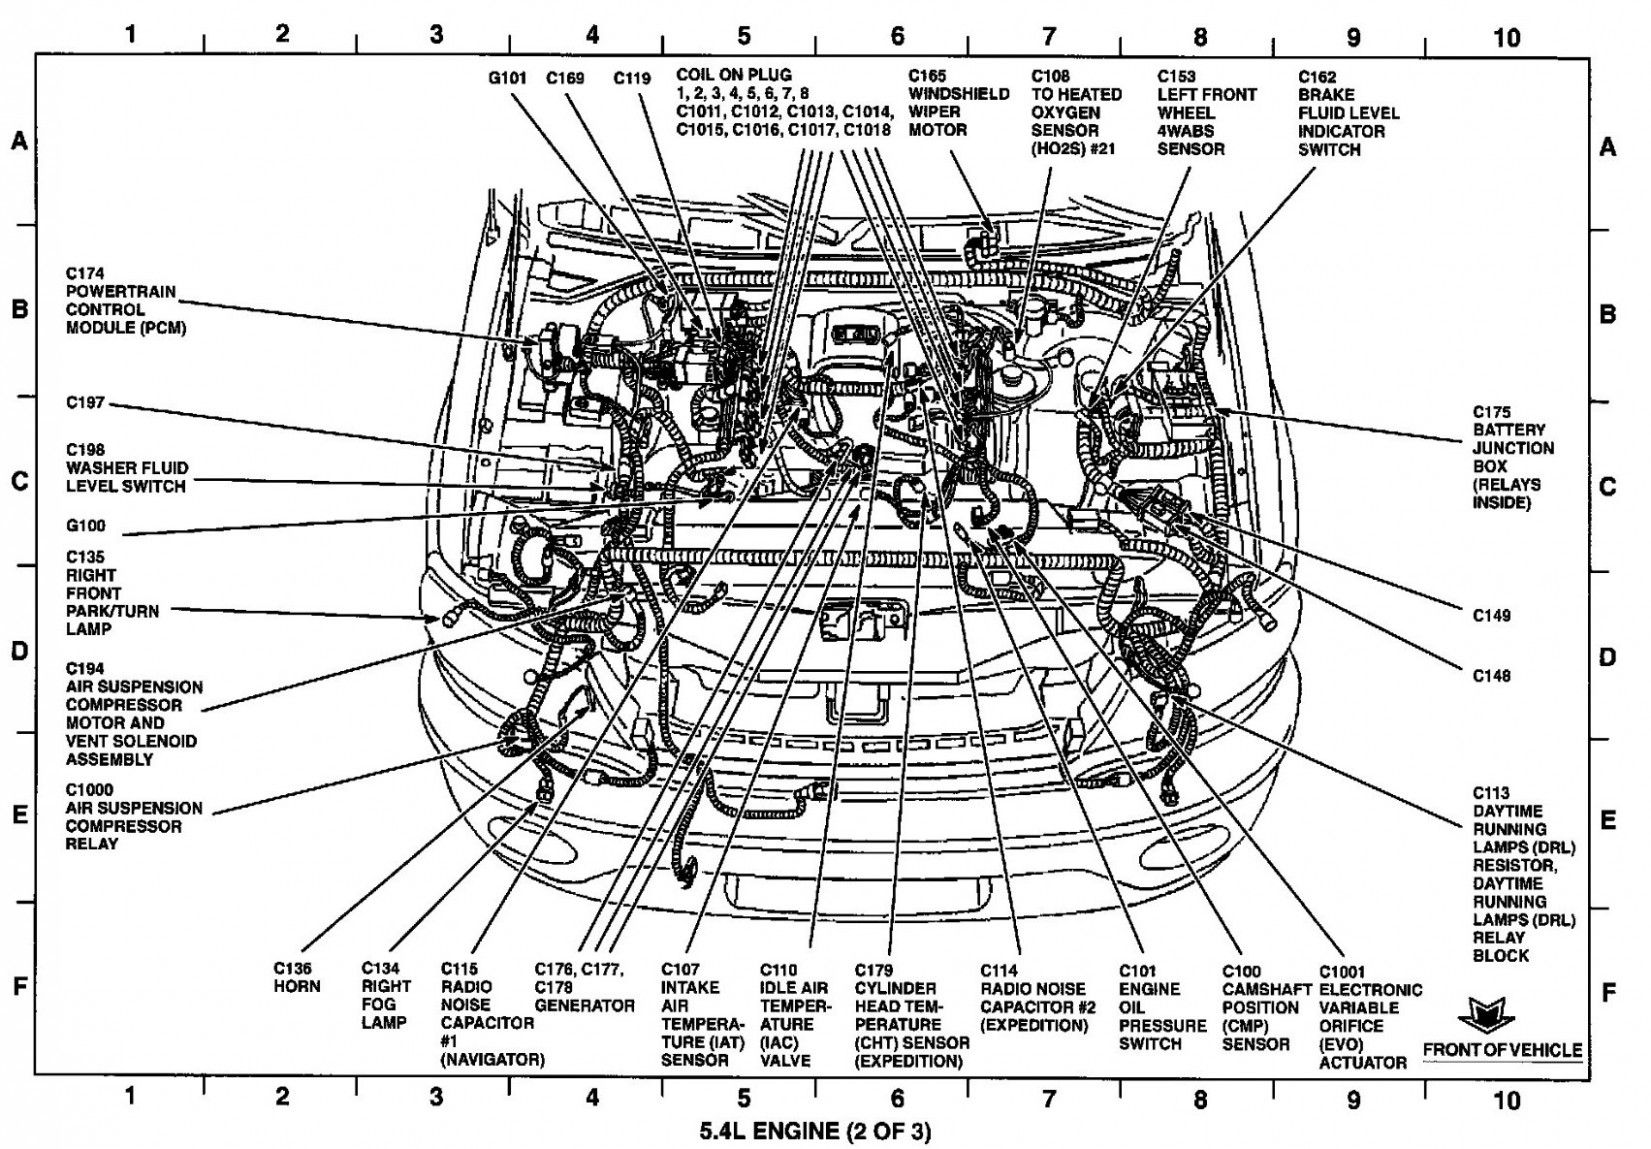 7 Ford Escape V7 Engine Diagram In 2020 Ford Focus Engine Ford Focus St Ford Focus